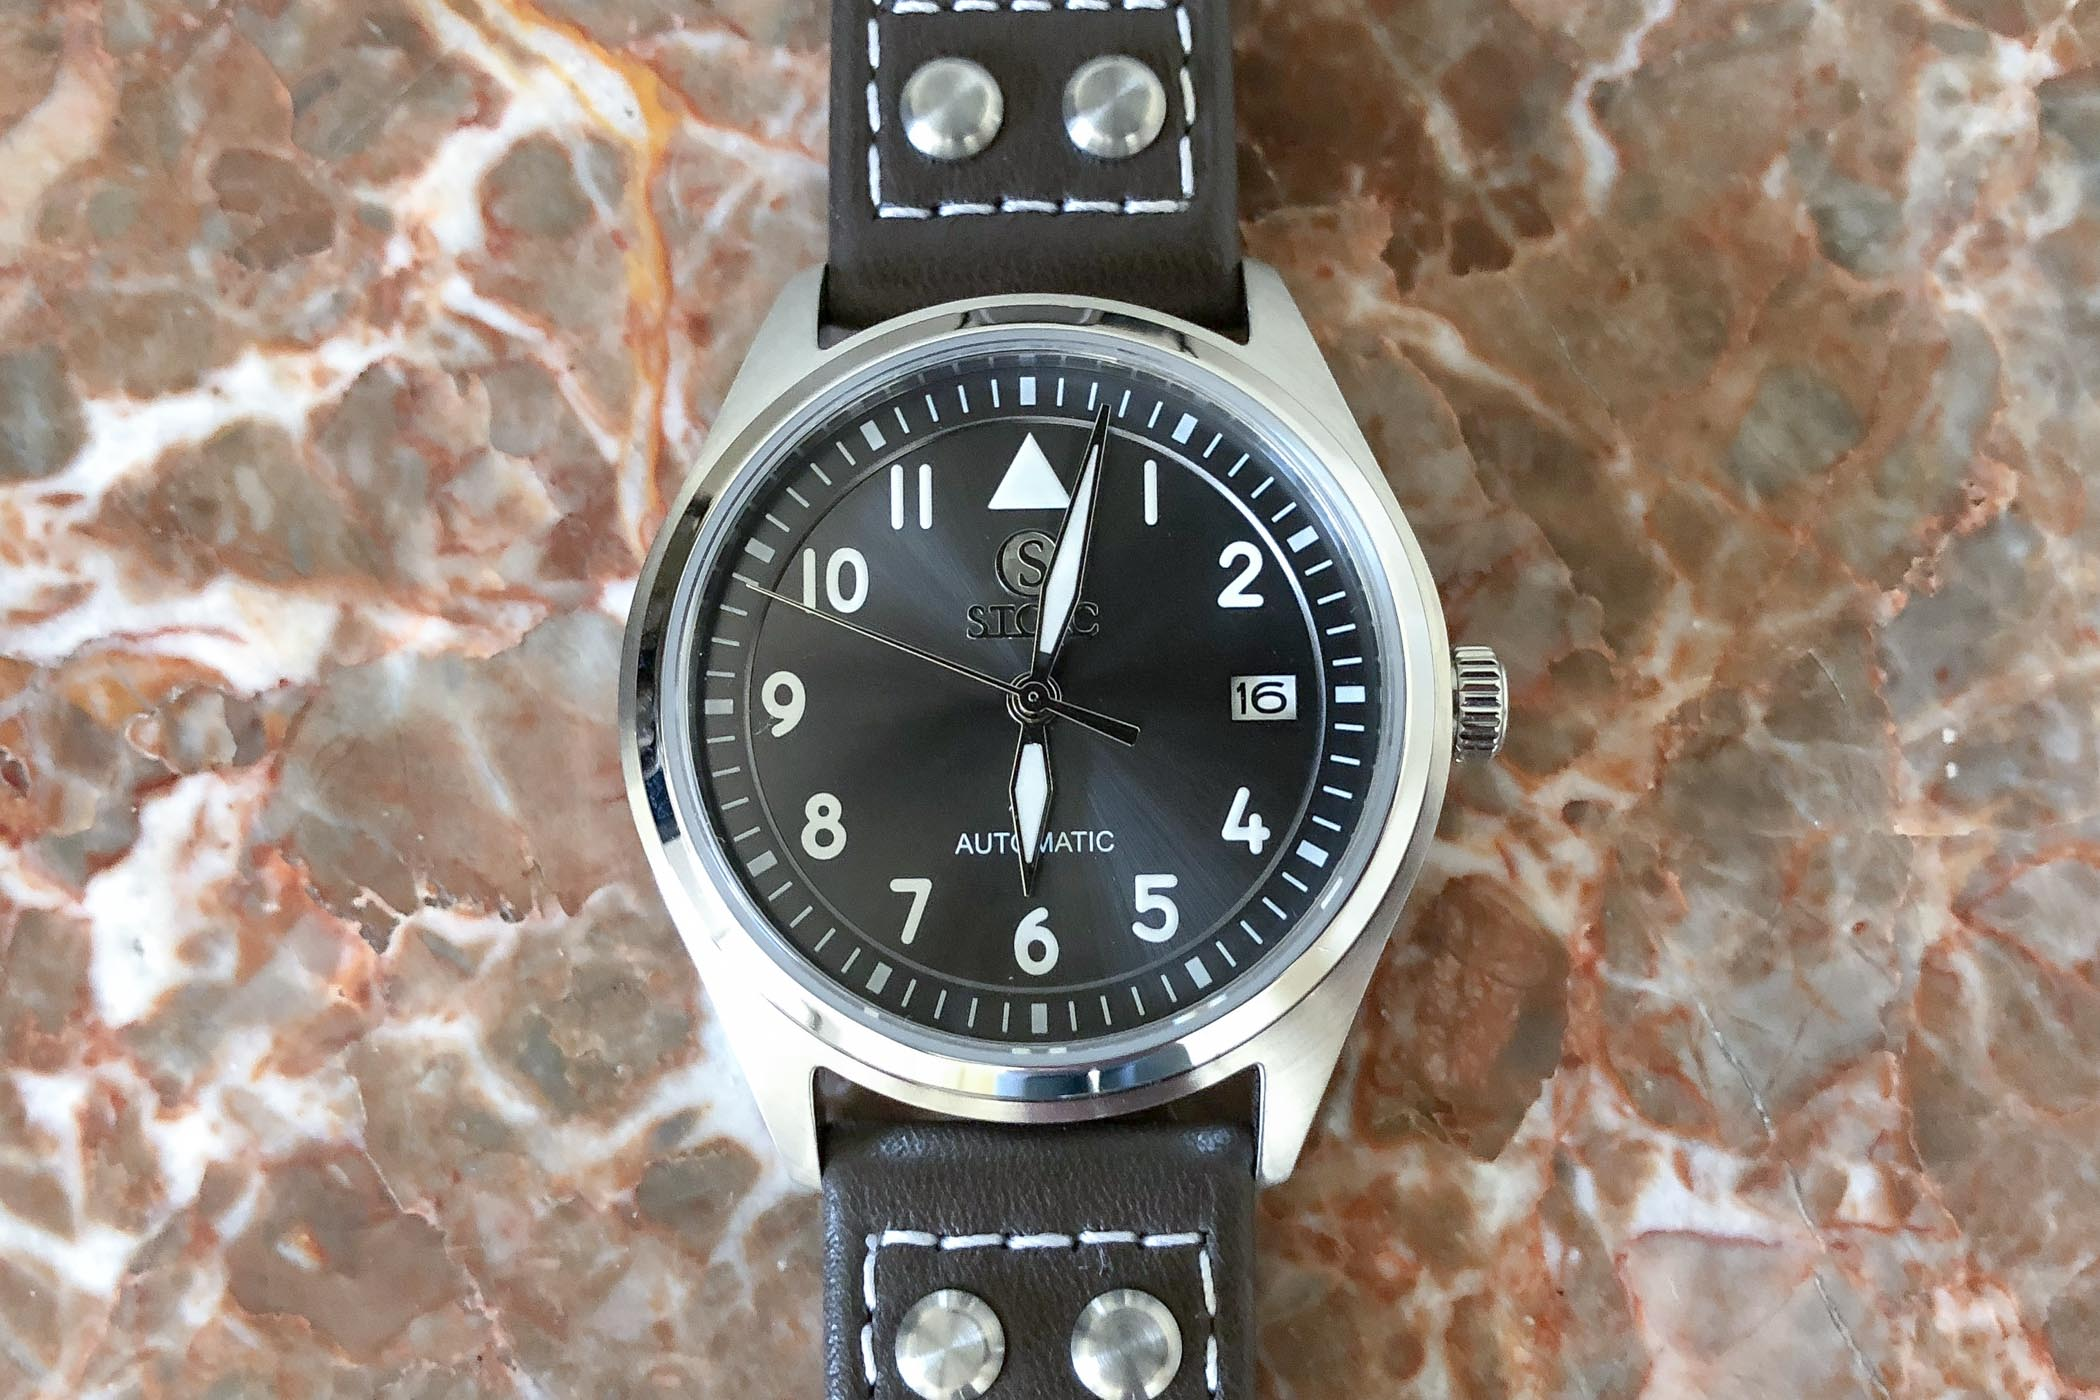 Stoic World Pilots Watch Peter Speake Marin review - 4